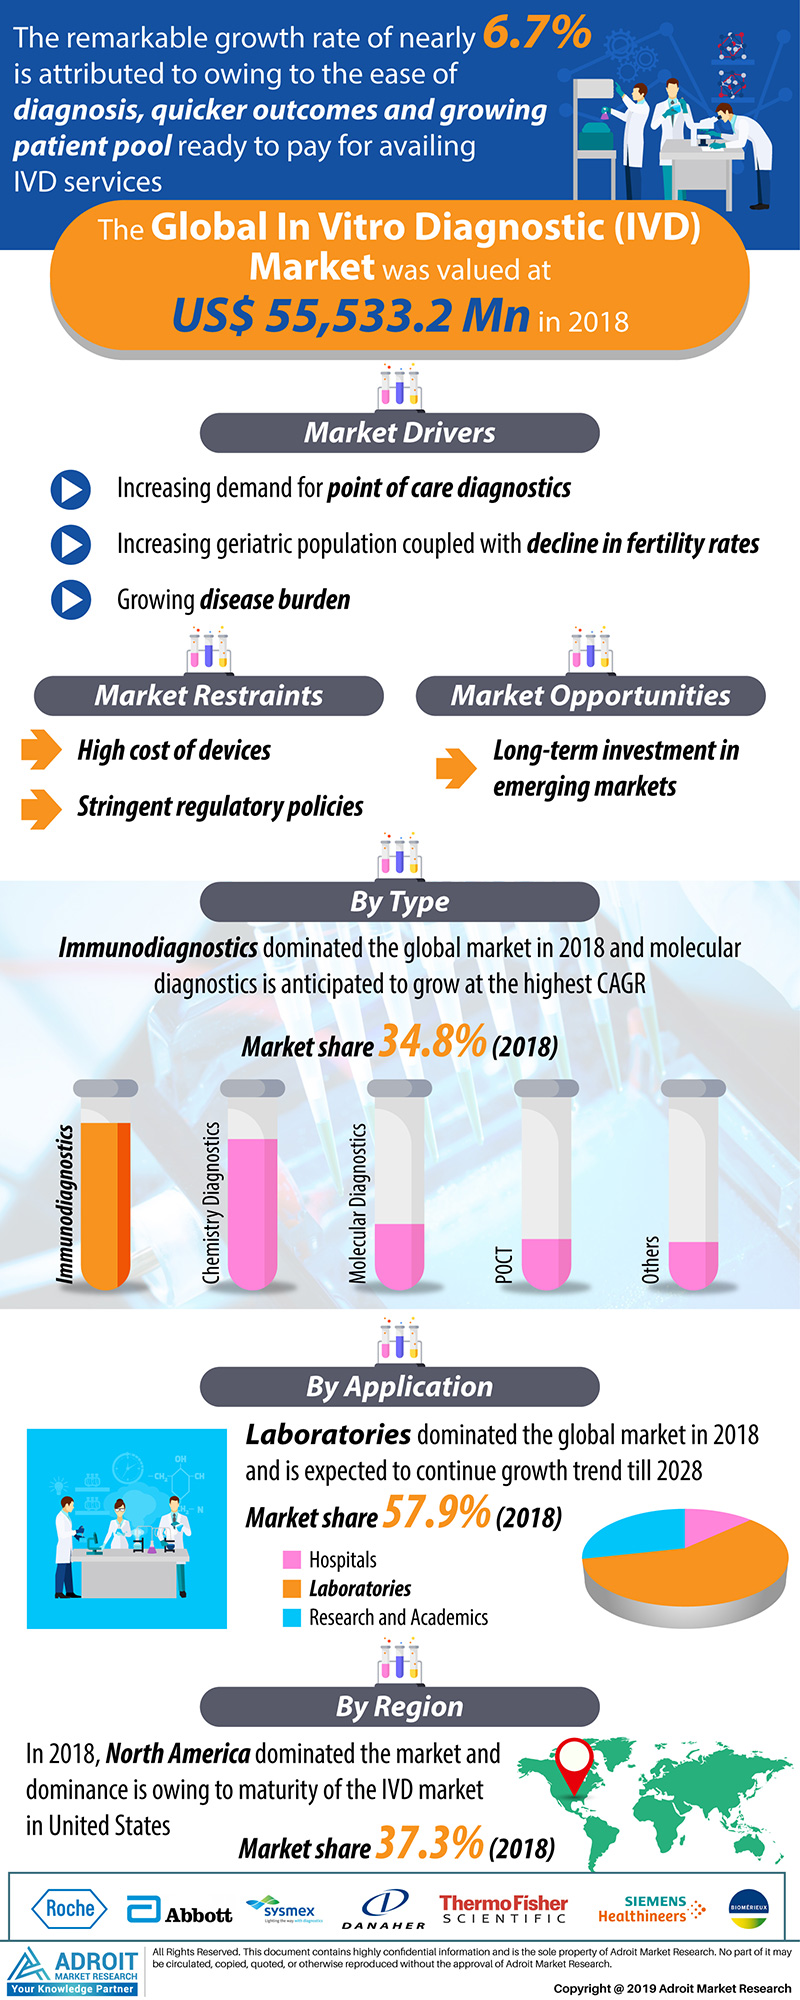 Global In Vitro Diagnostics (IVD) Market Size 2018 By Type, Application, Region and Forecast 2019 to 2028